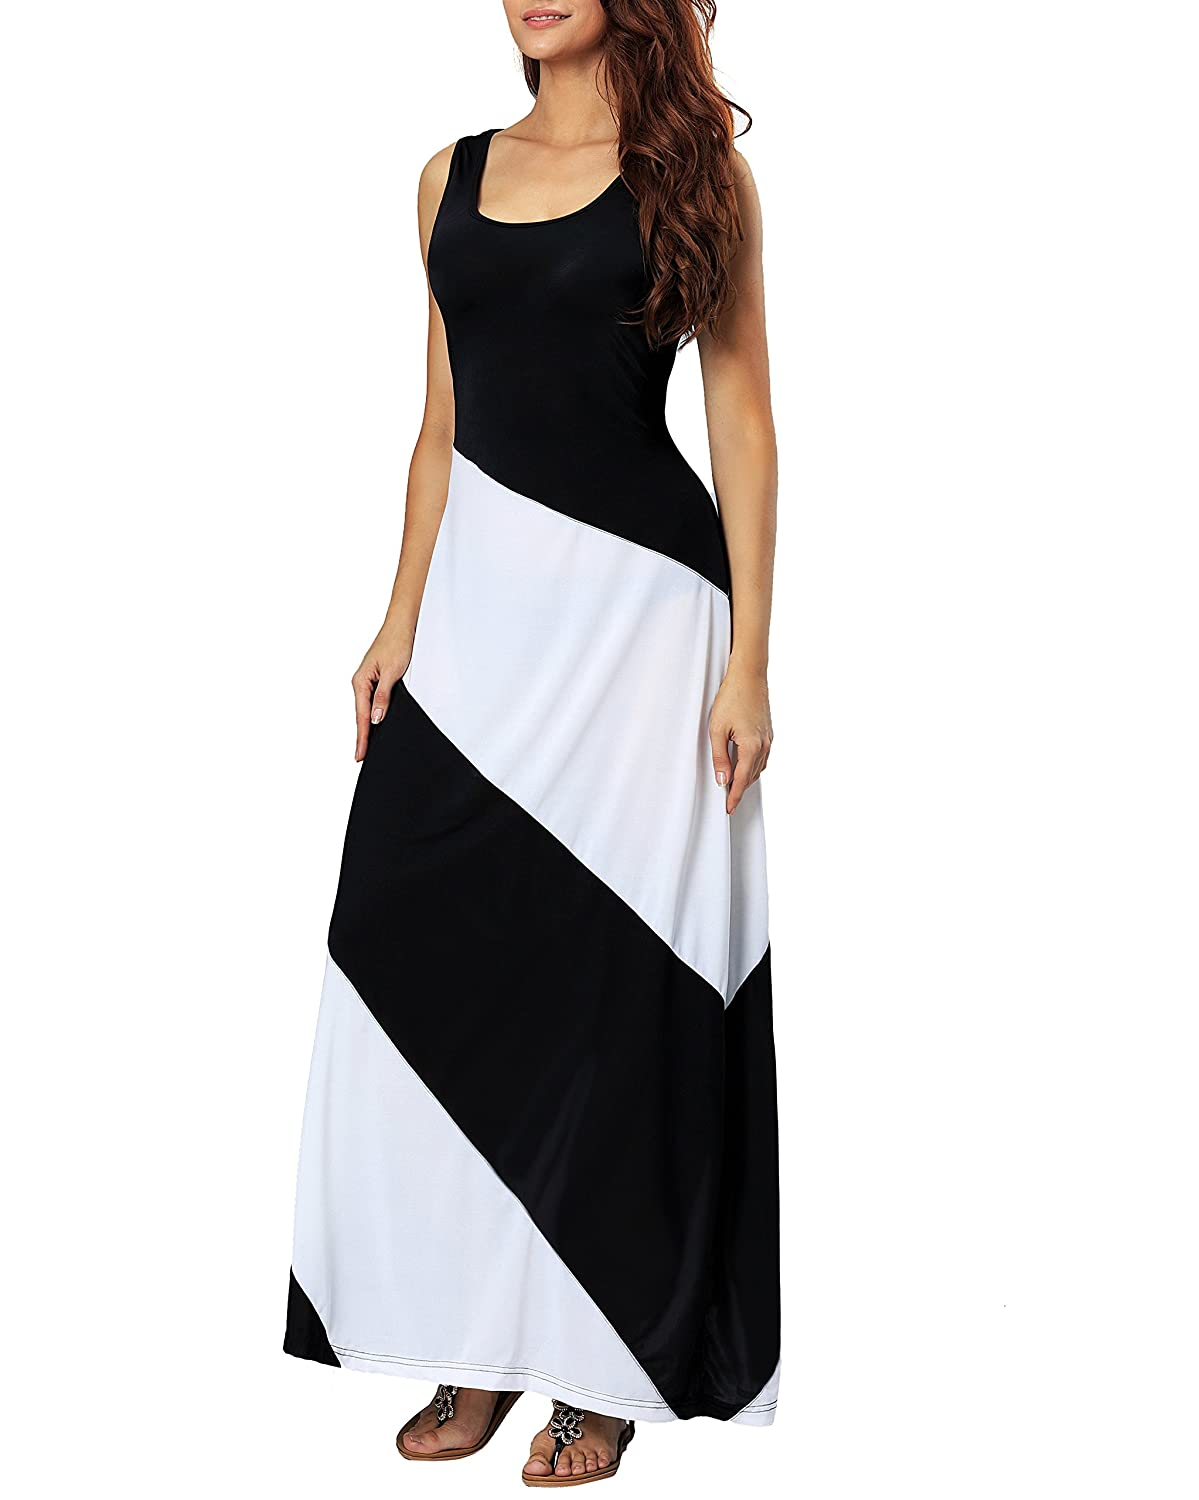 2019 year for lady- Wear to what under clingy maxi dress